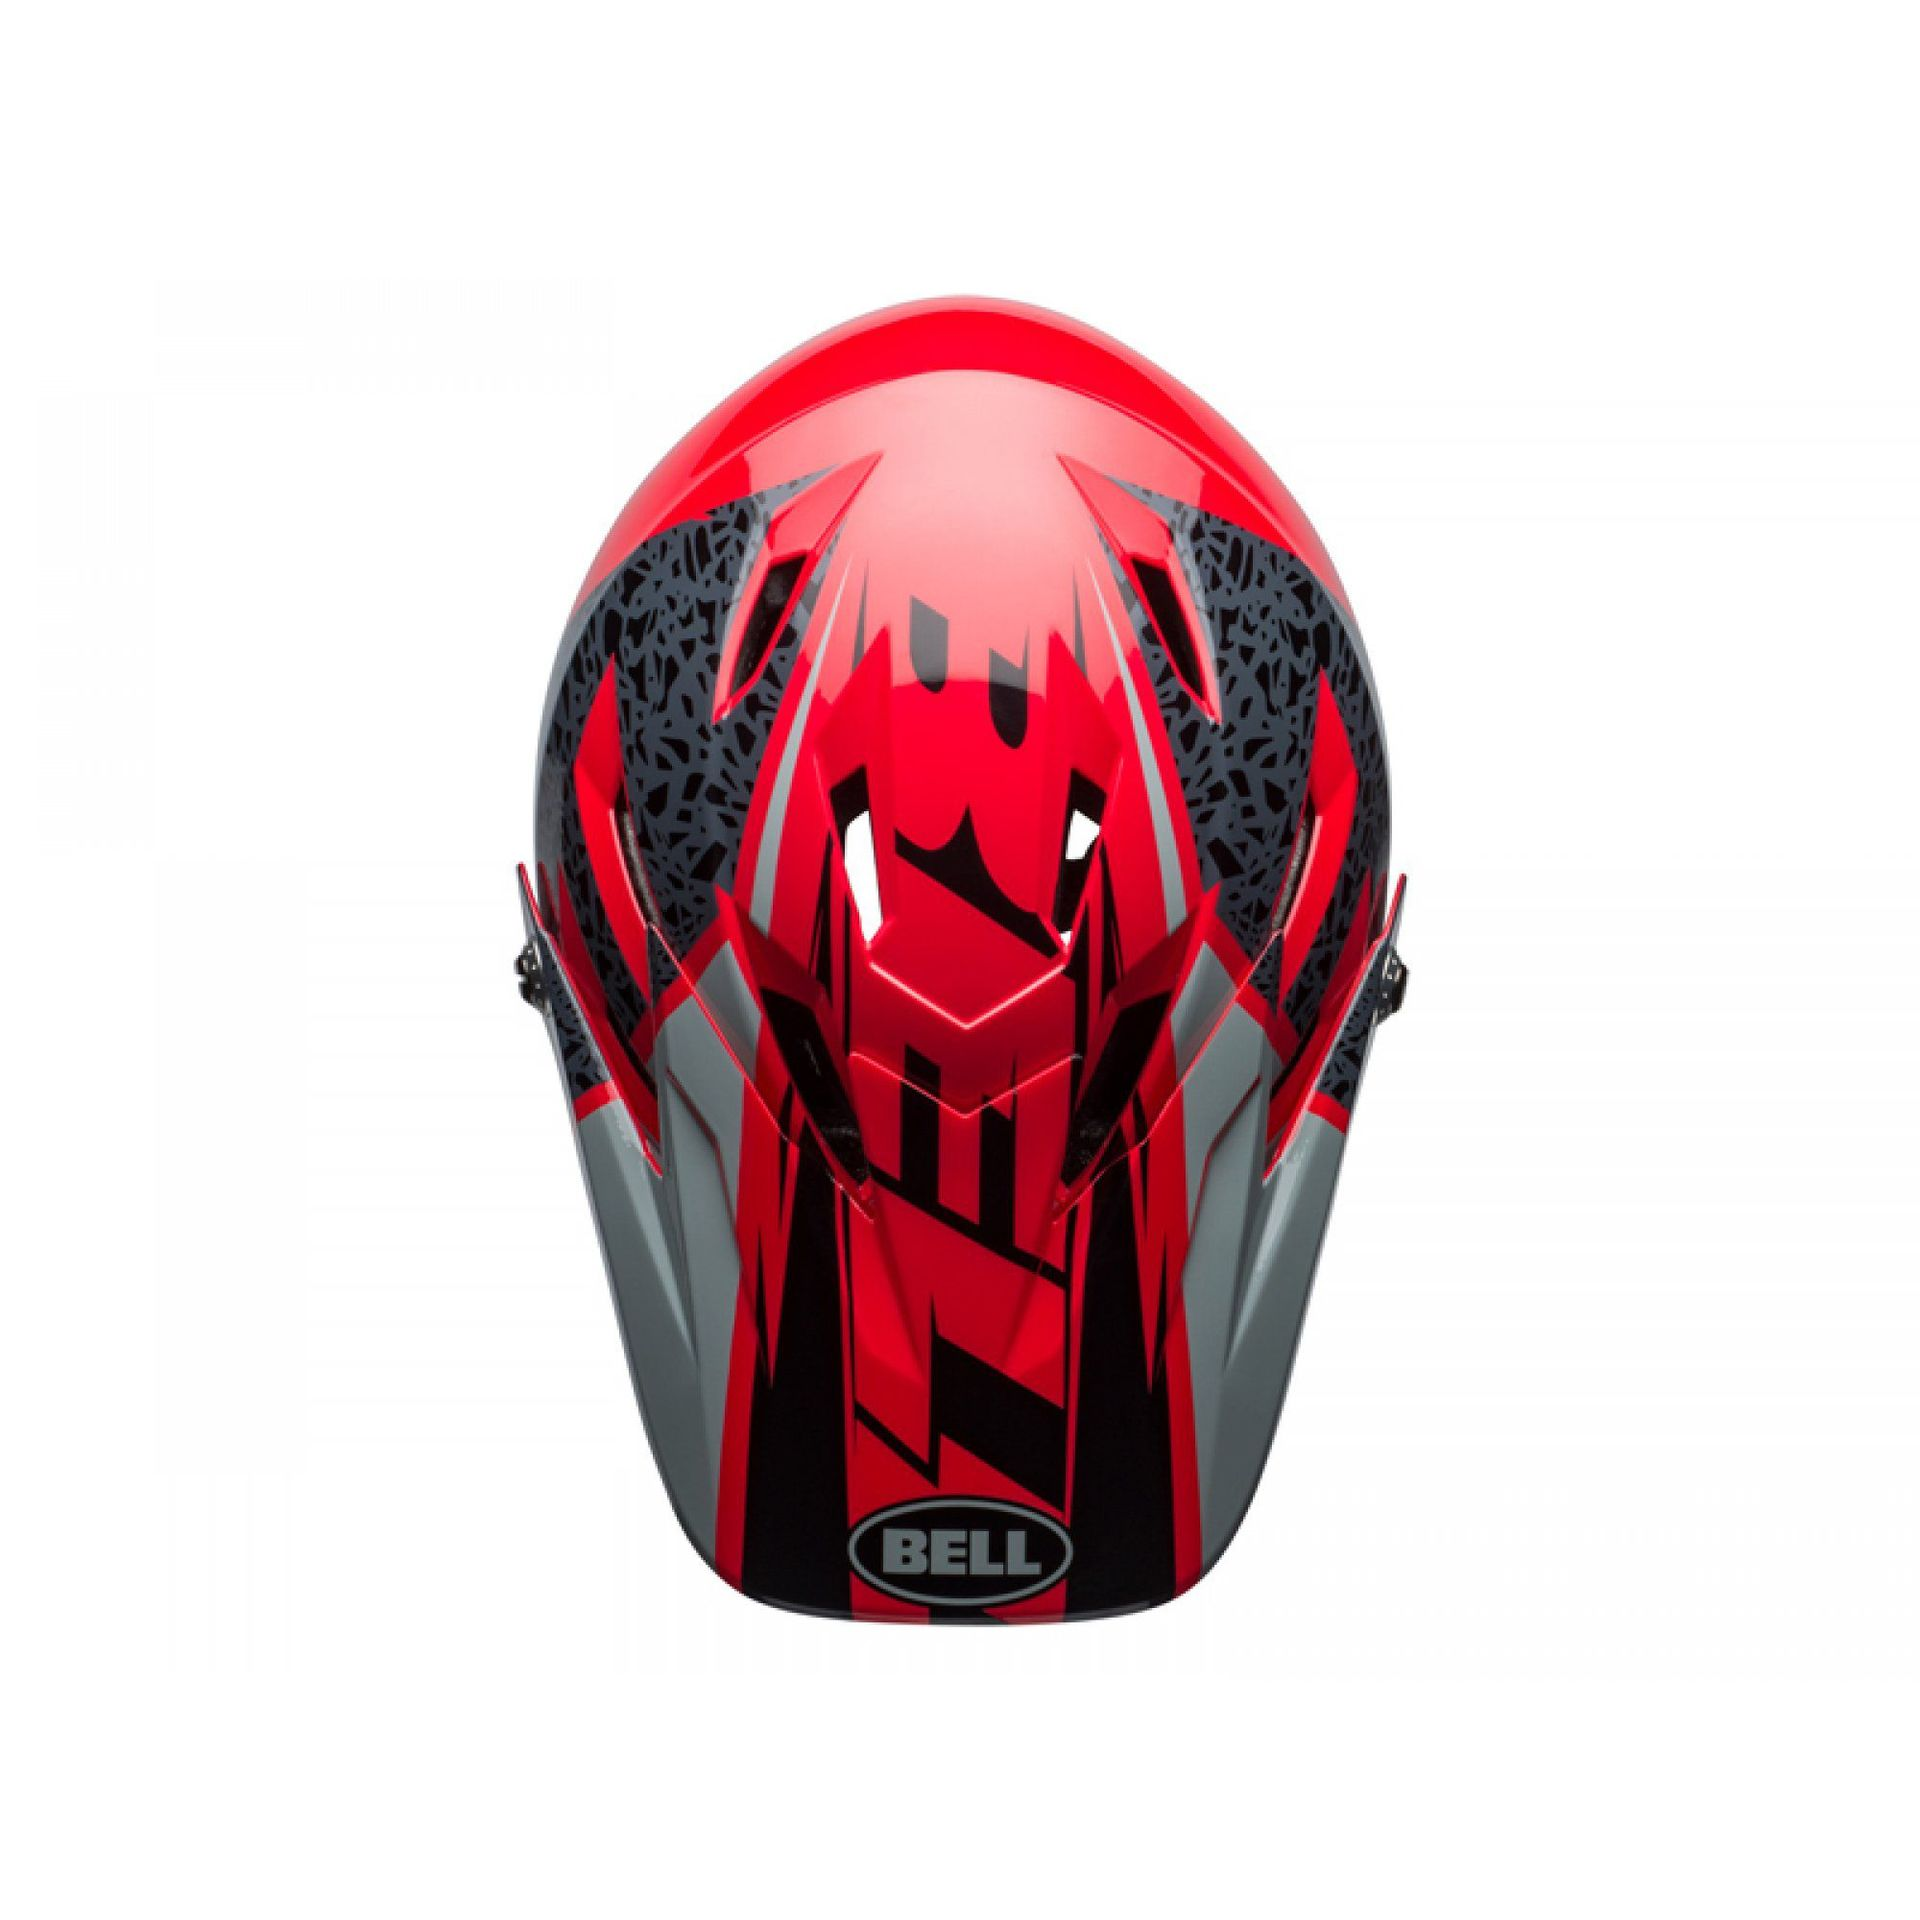 KASK ROWEROWY BELL SANCTION GLOSS HIBISCUS|SMOKE REPARATION 4